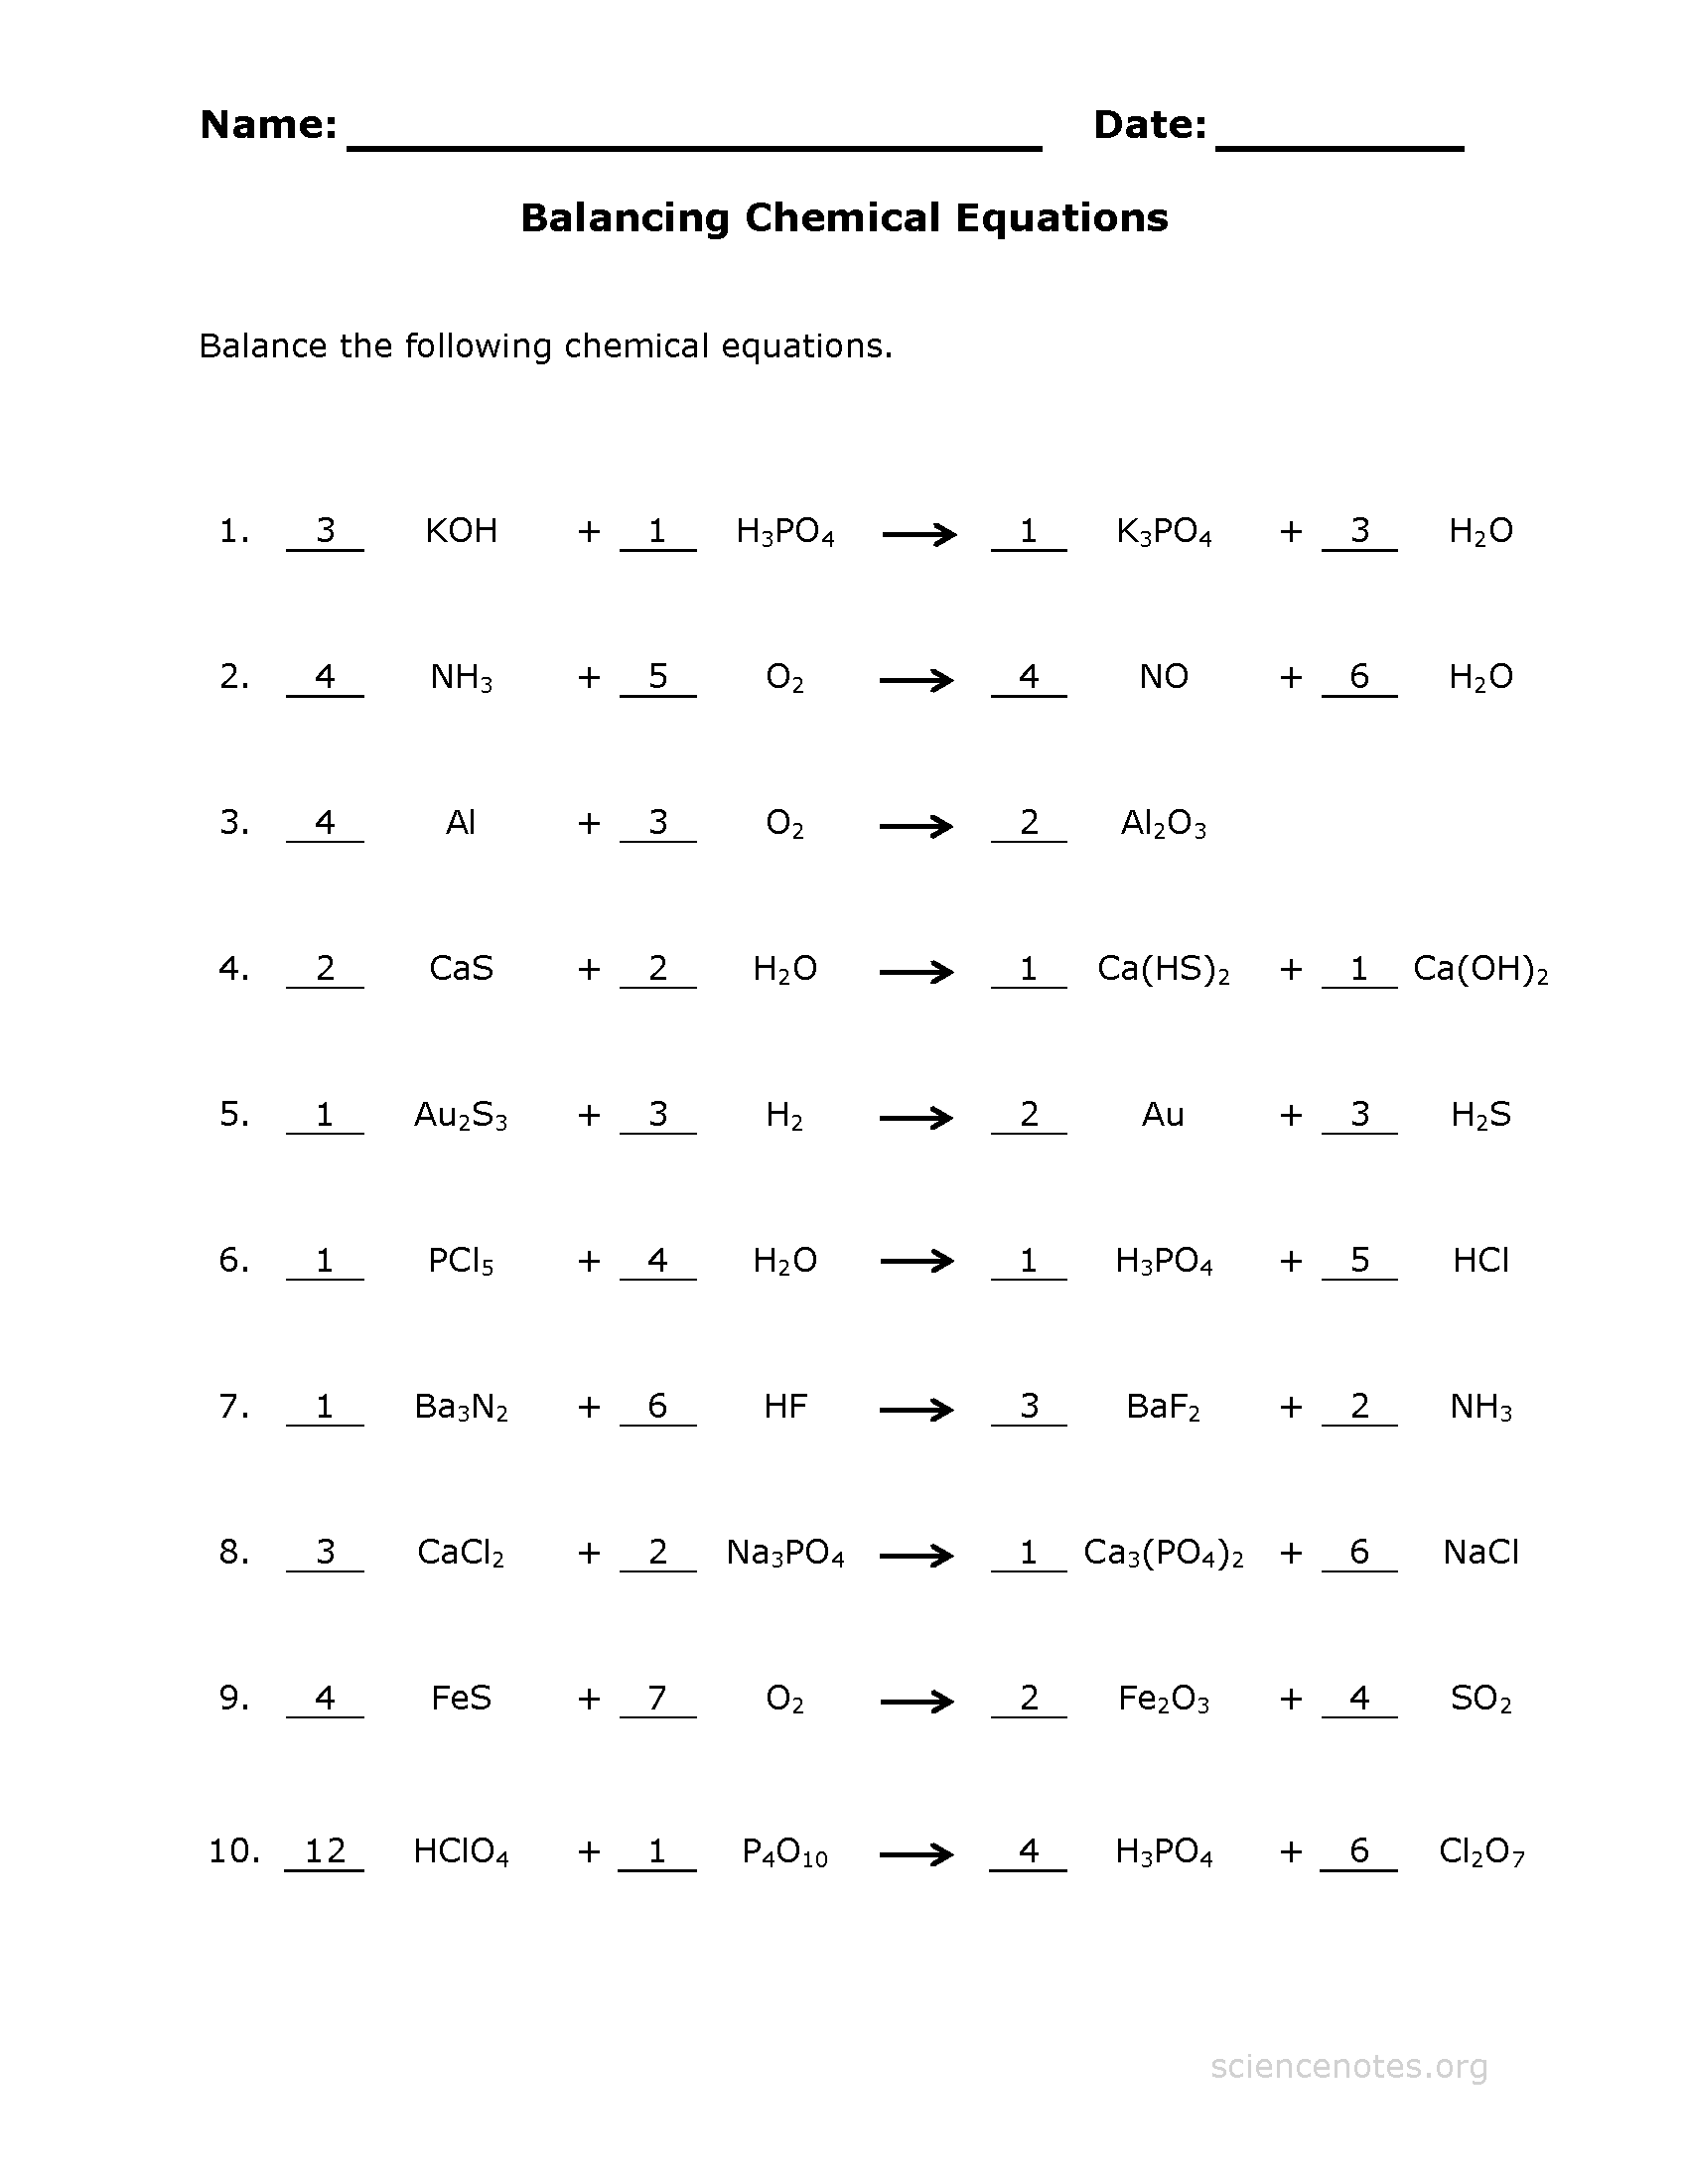 worksheet Chemistry Balancing Chemical Equations Worksheet balancing chemical equations practice sheet to see the completed check out our other equation worksheets